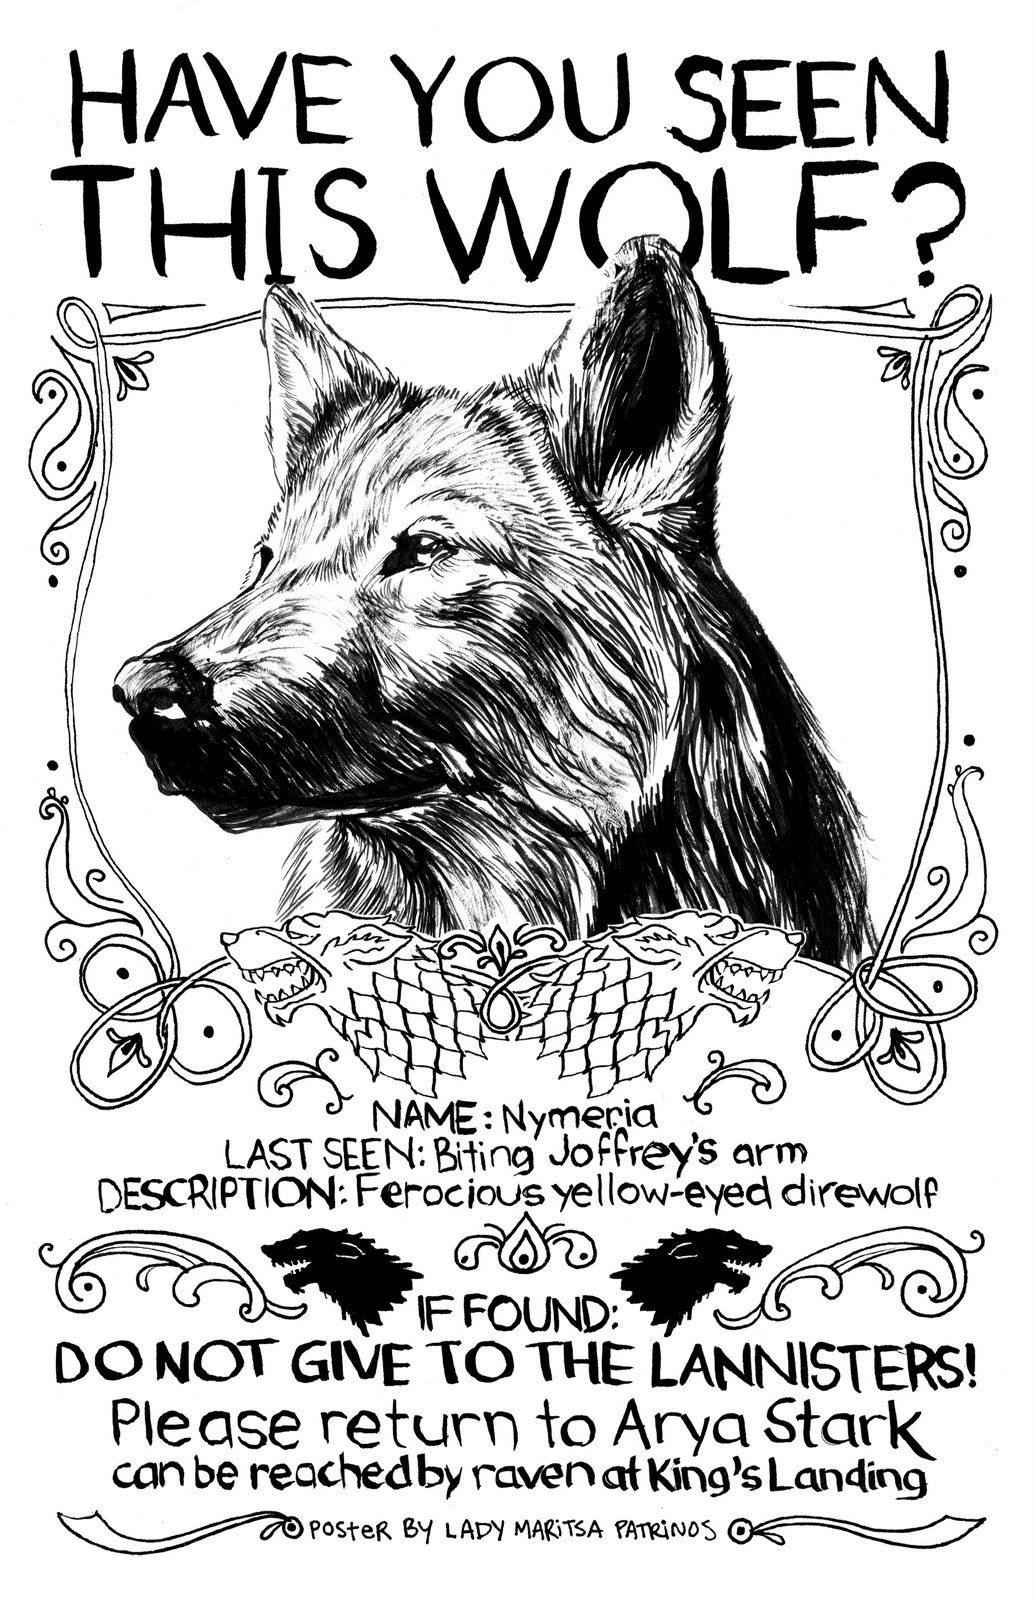 Have You Seen This Direwolf Arya Stark S Lost Dog Poster